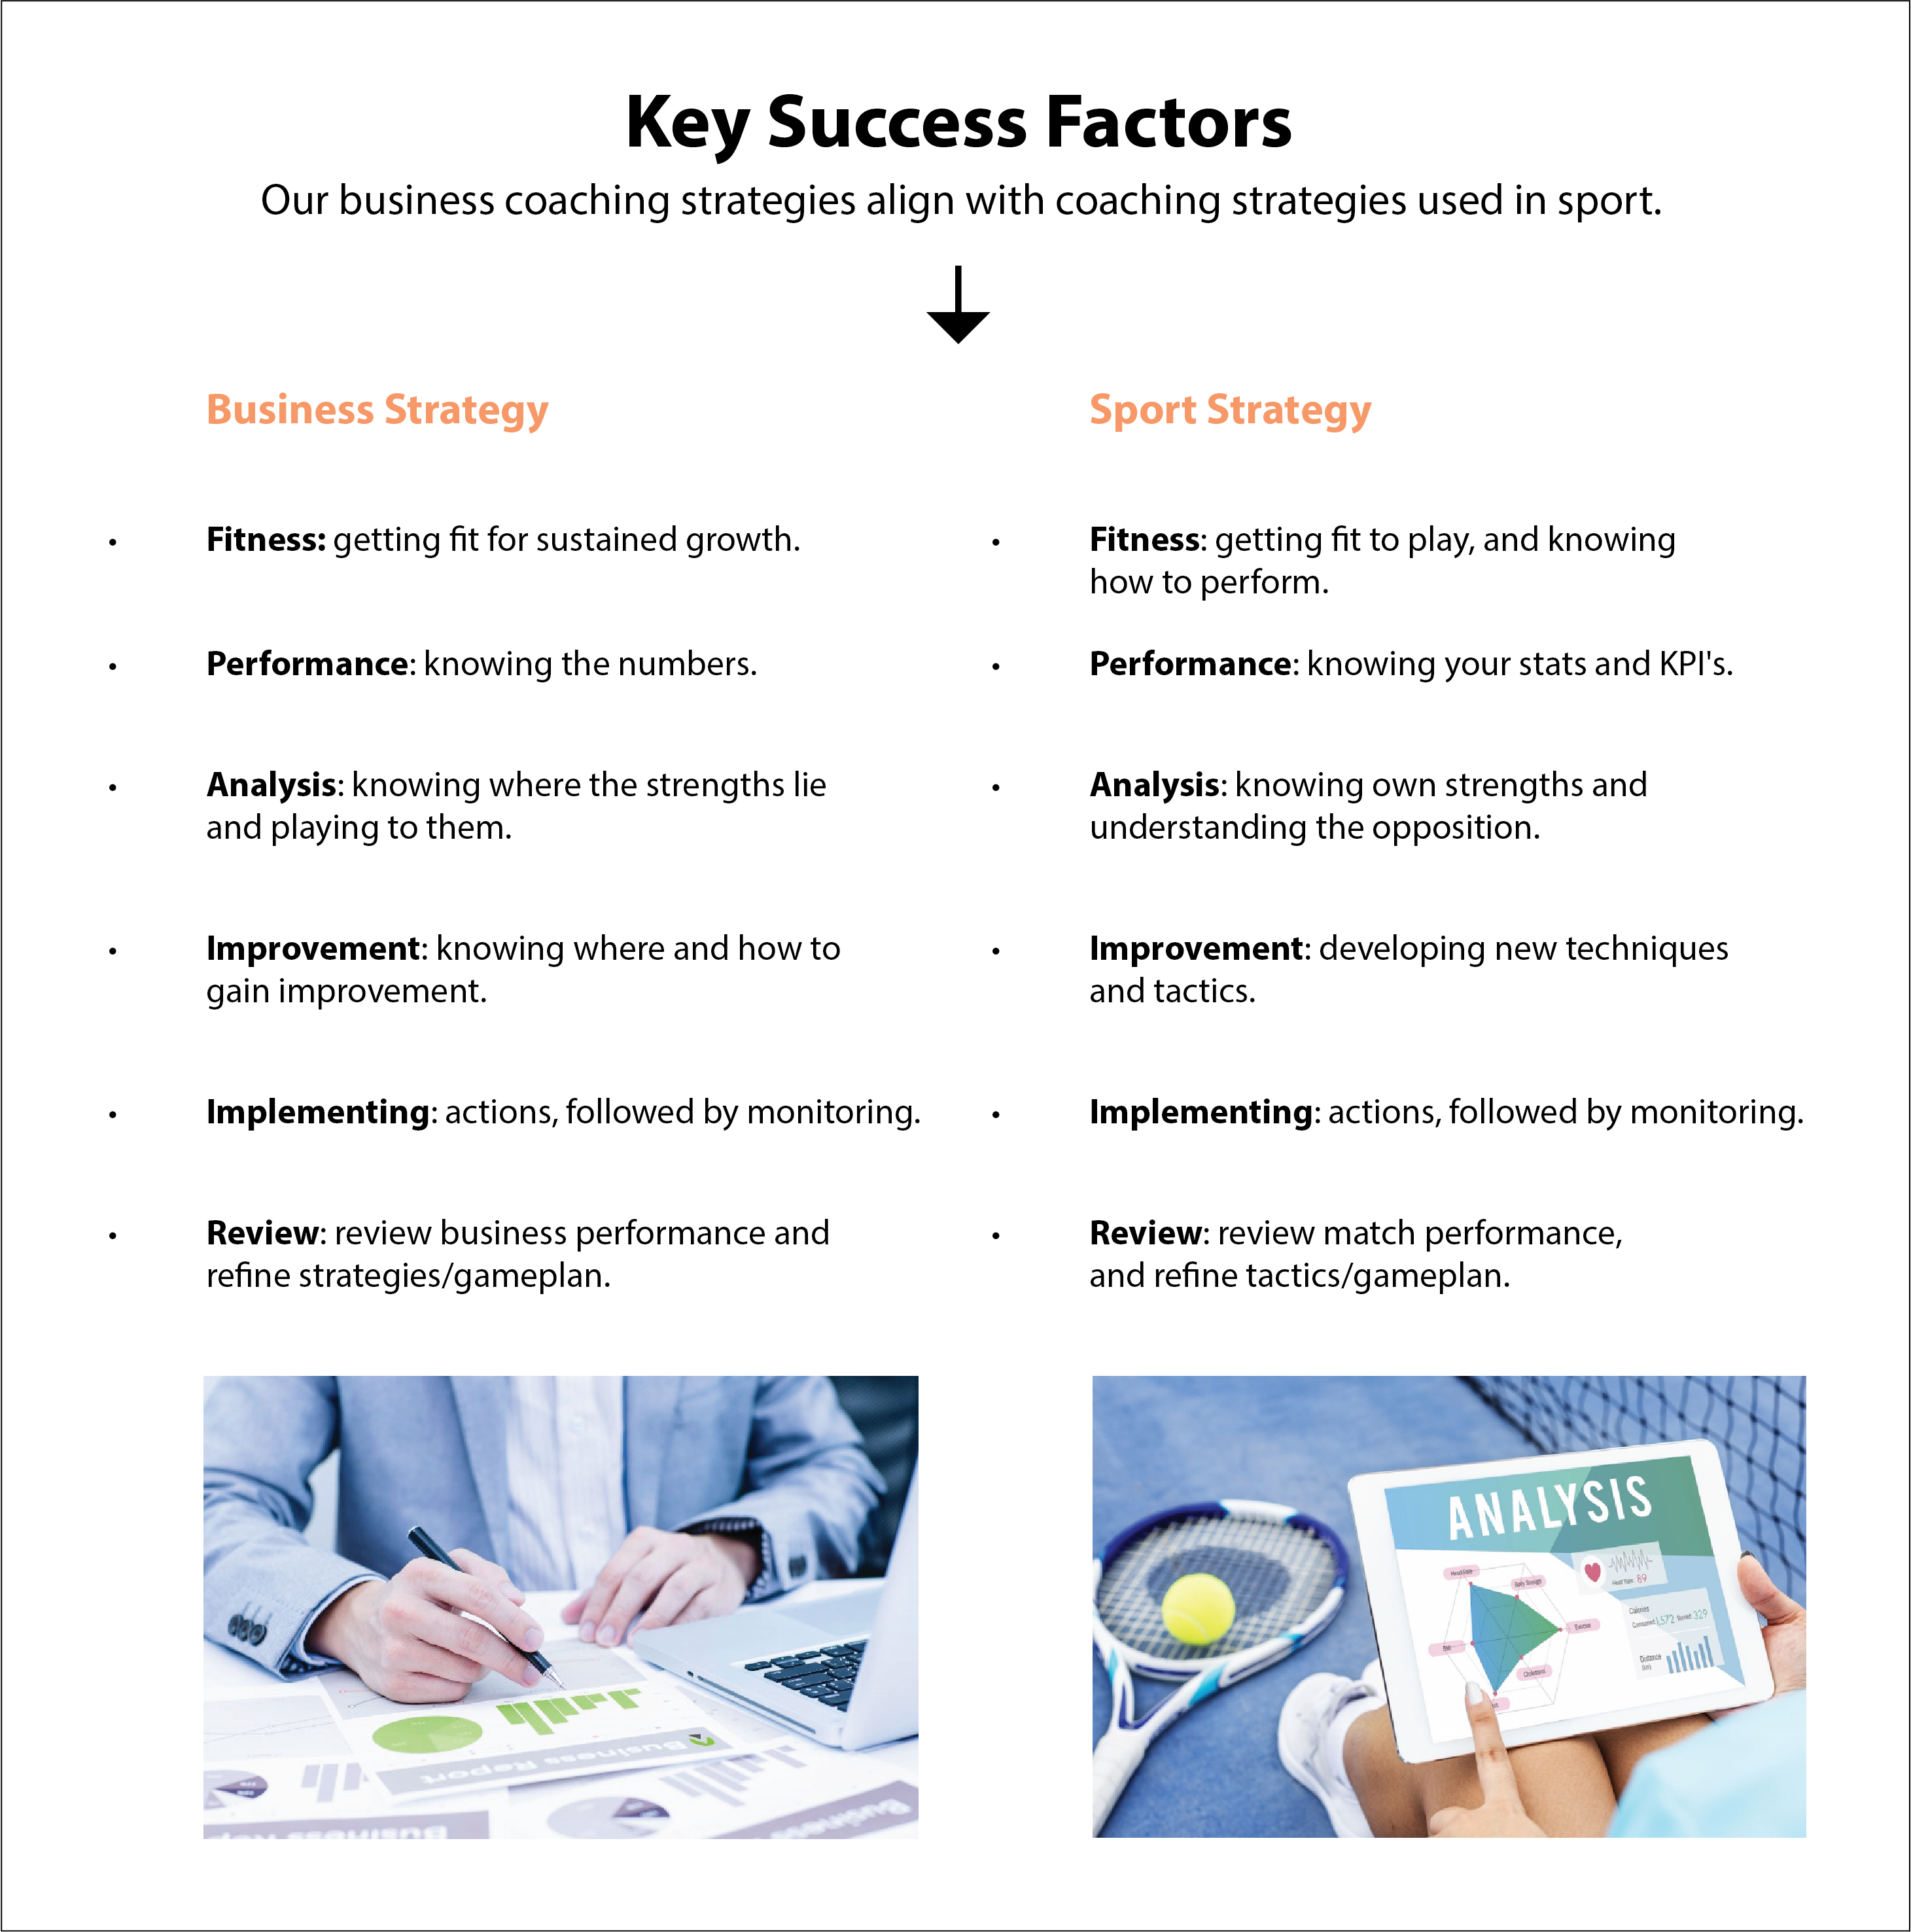 singtel key success factors Business framework key success factors key success factors, also known as critical success factors, is the term for elements necessary for an organization or project to achieve its mission this methodology is commonly used in data analysis and business analysis.